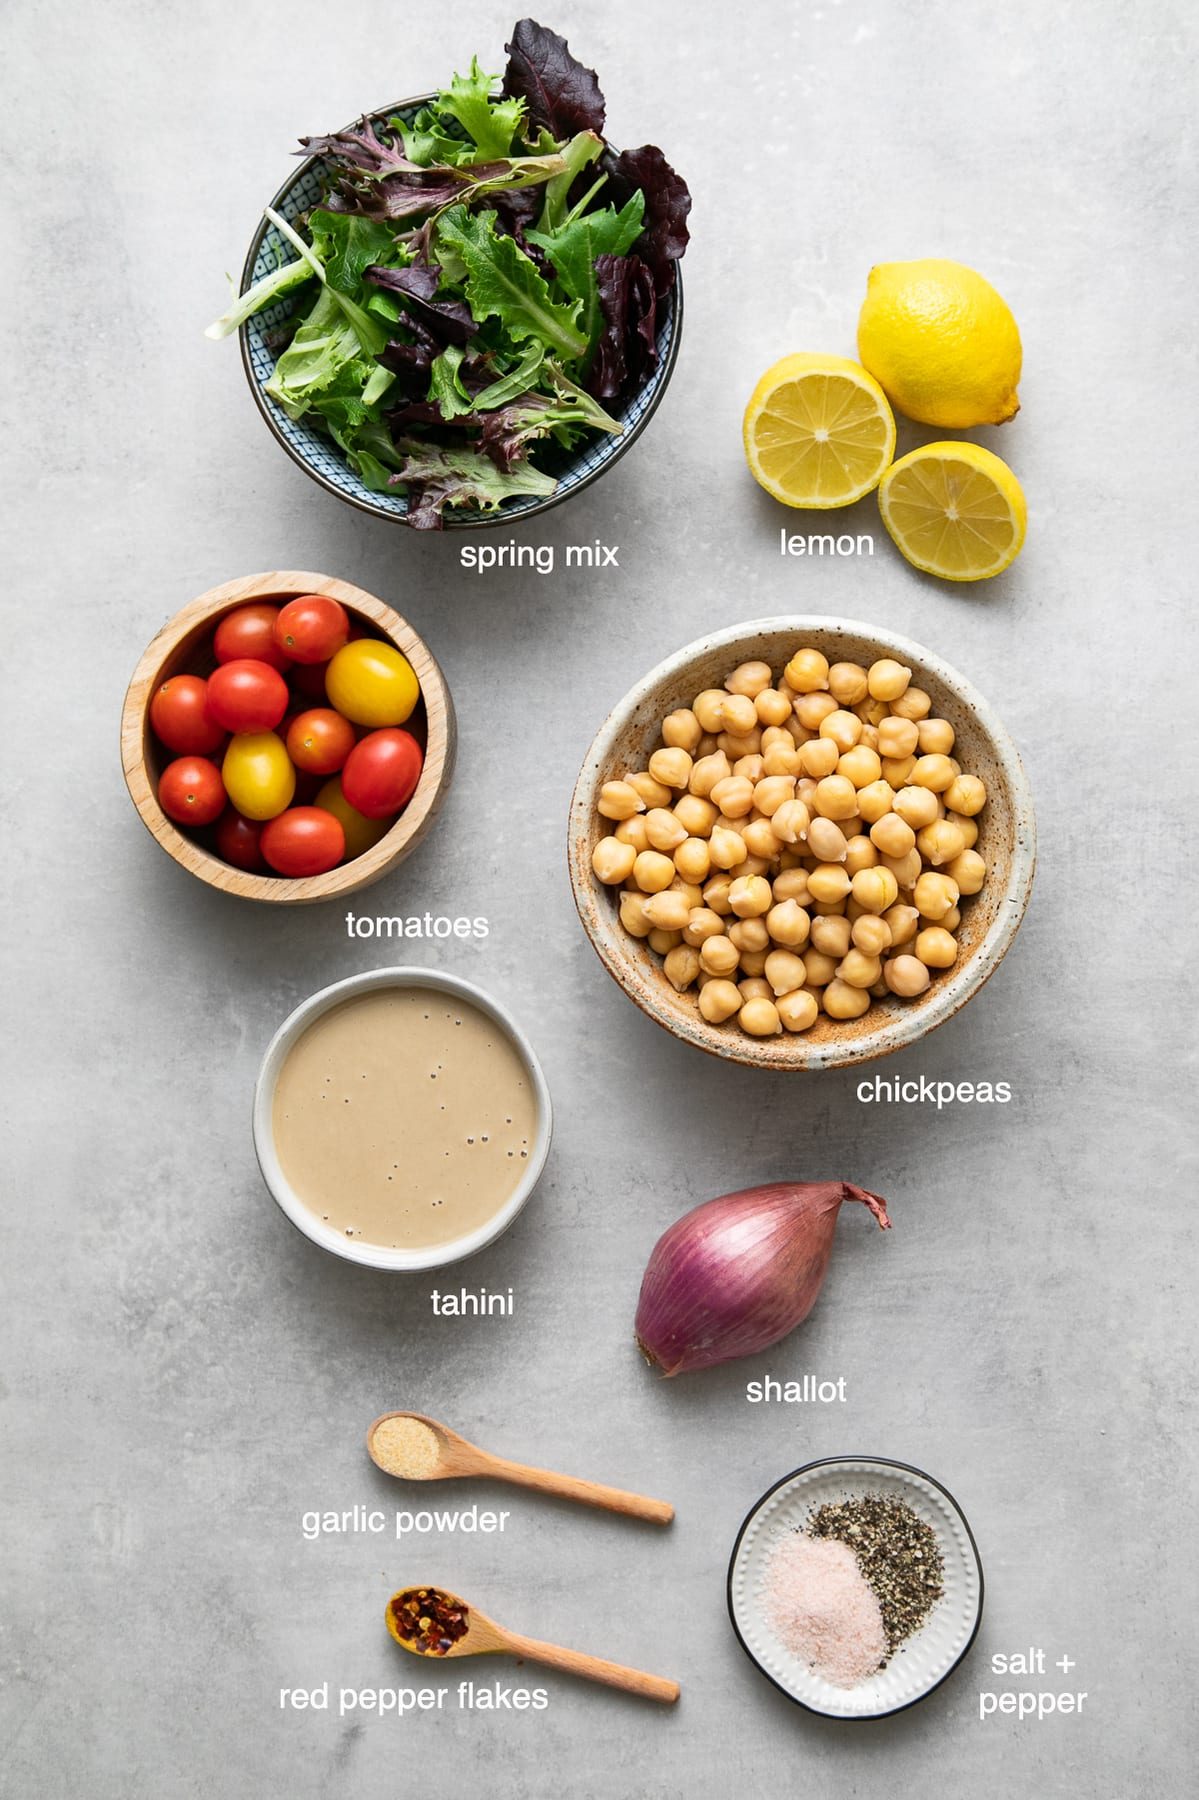 top down view of ingredients used to make green salad with chickpeas and tahini dressing.